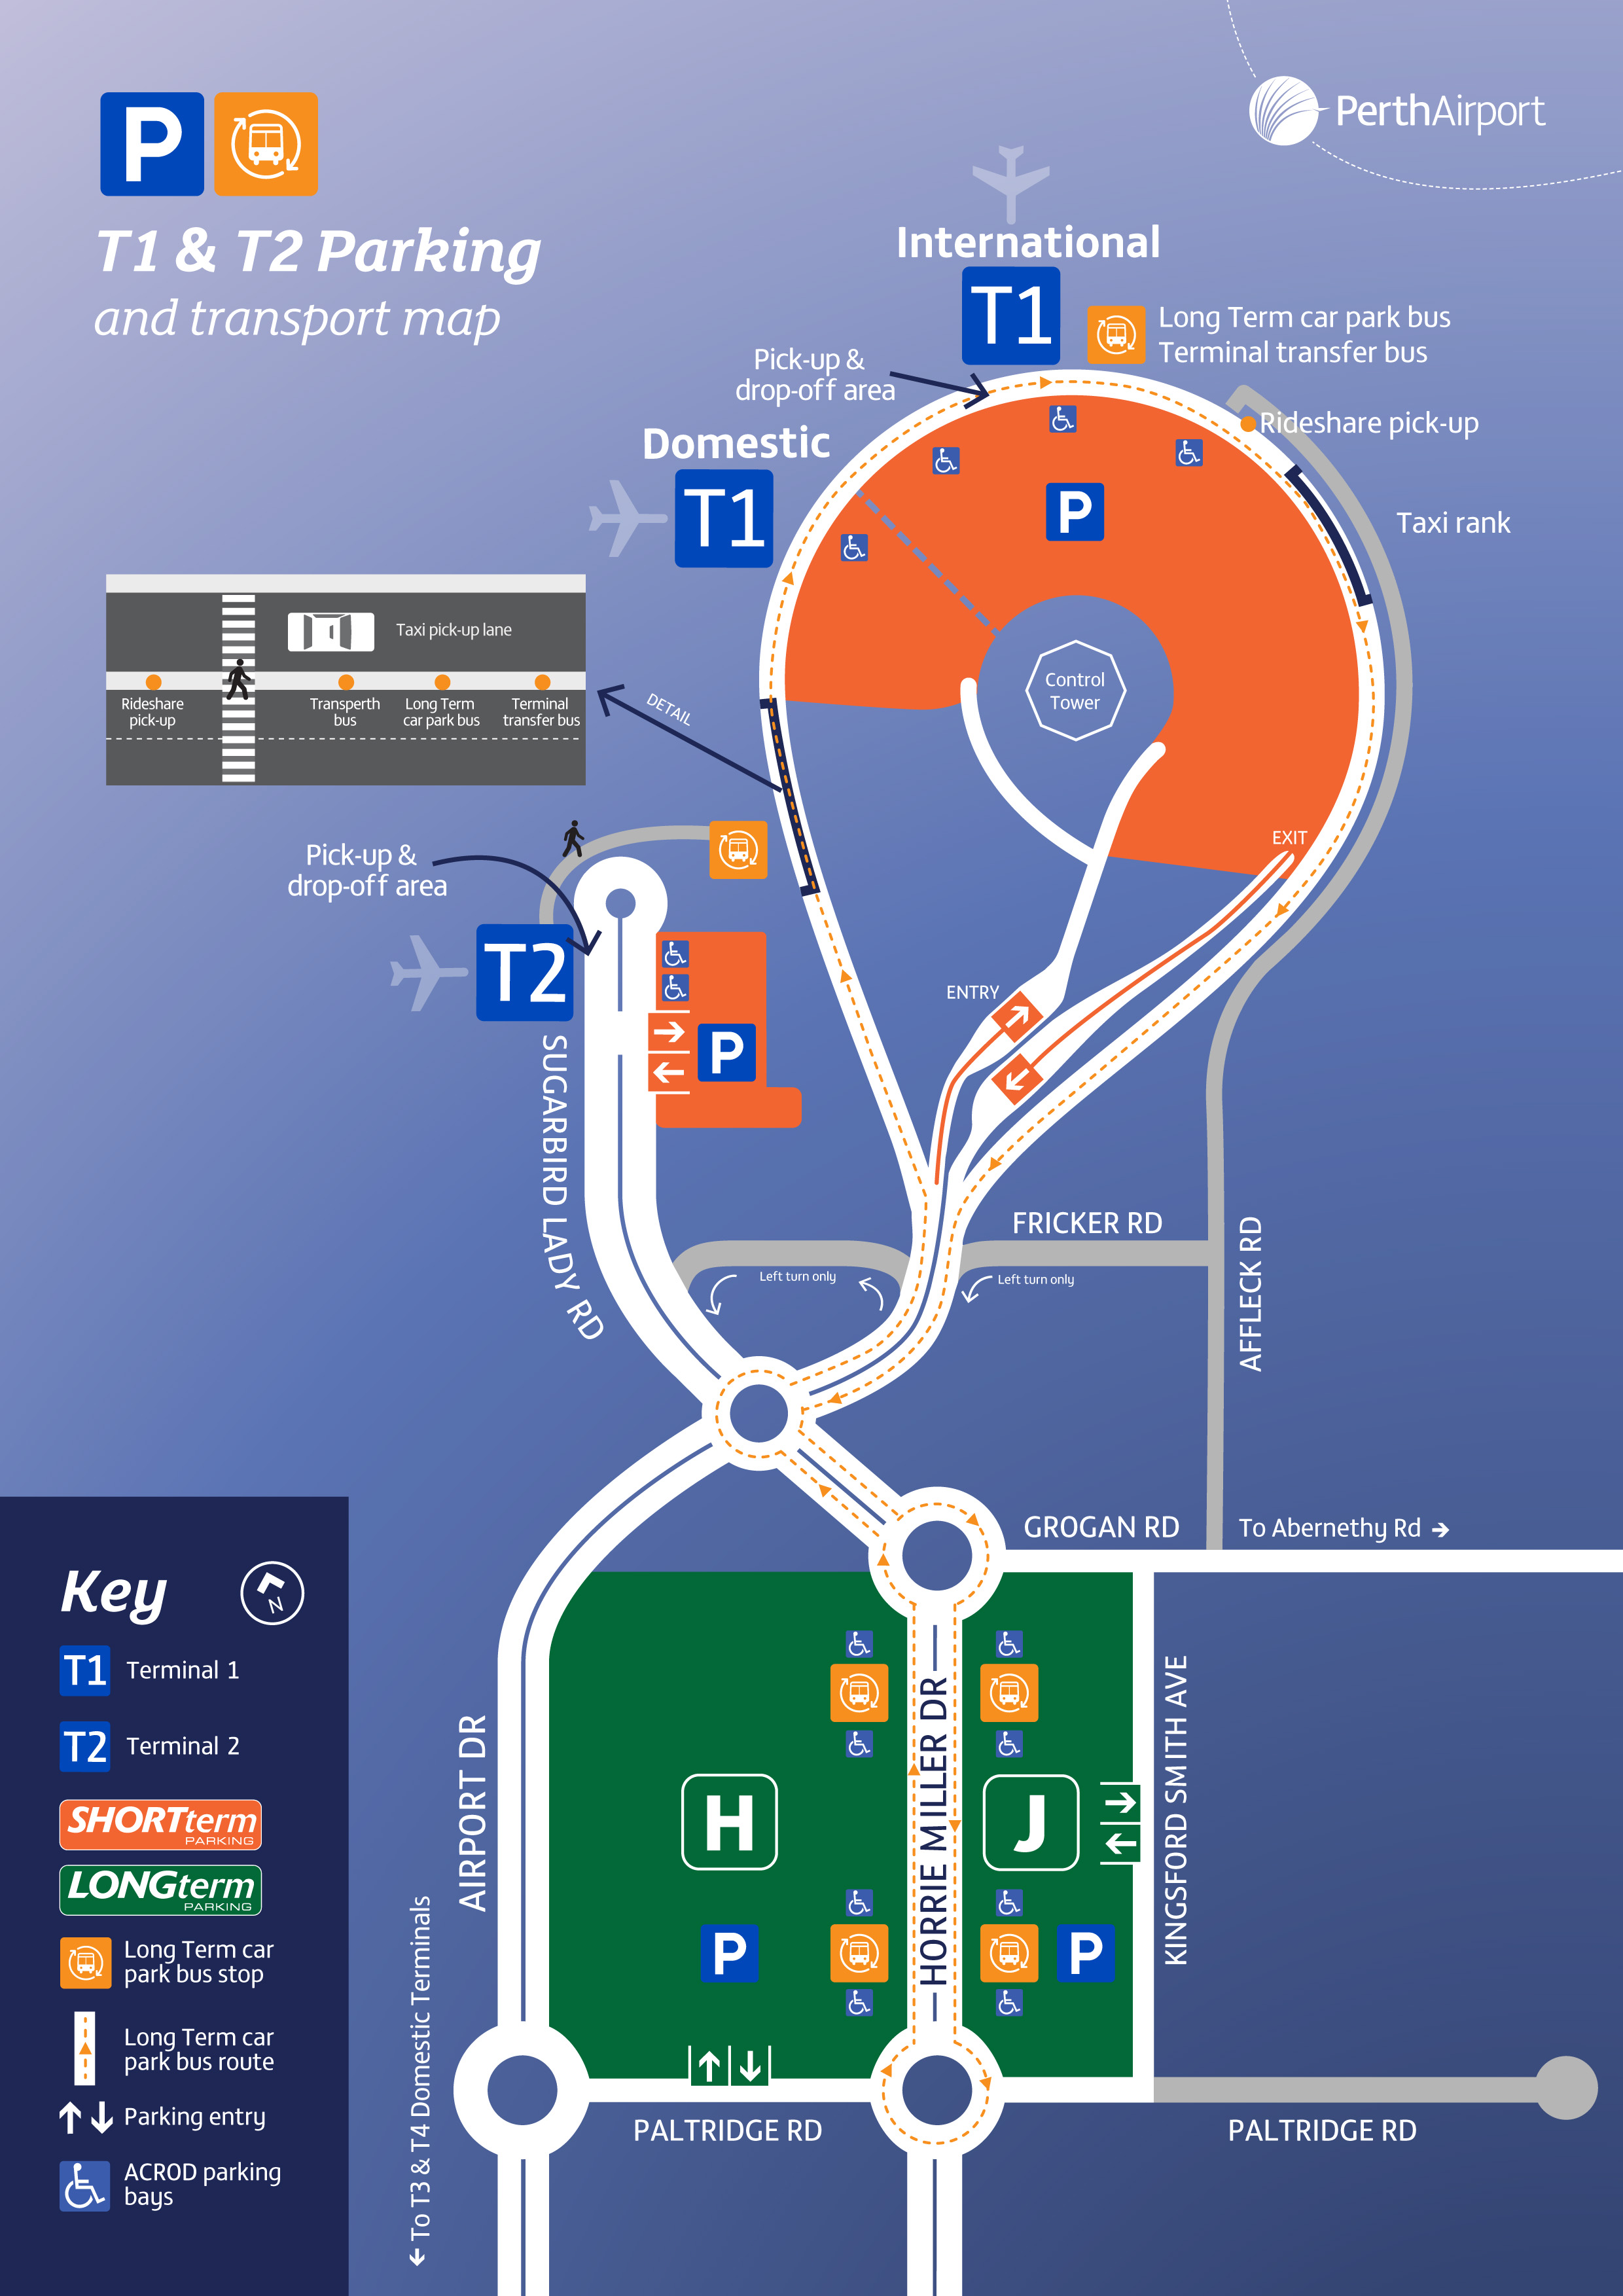 Perth Airport Terminals 1 and 2 map